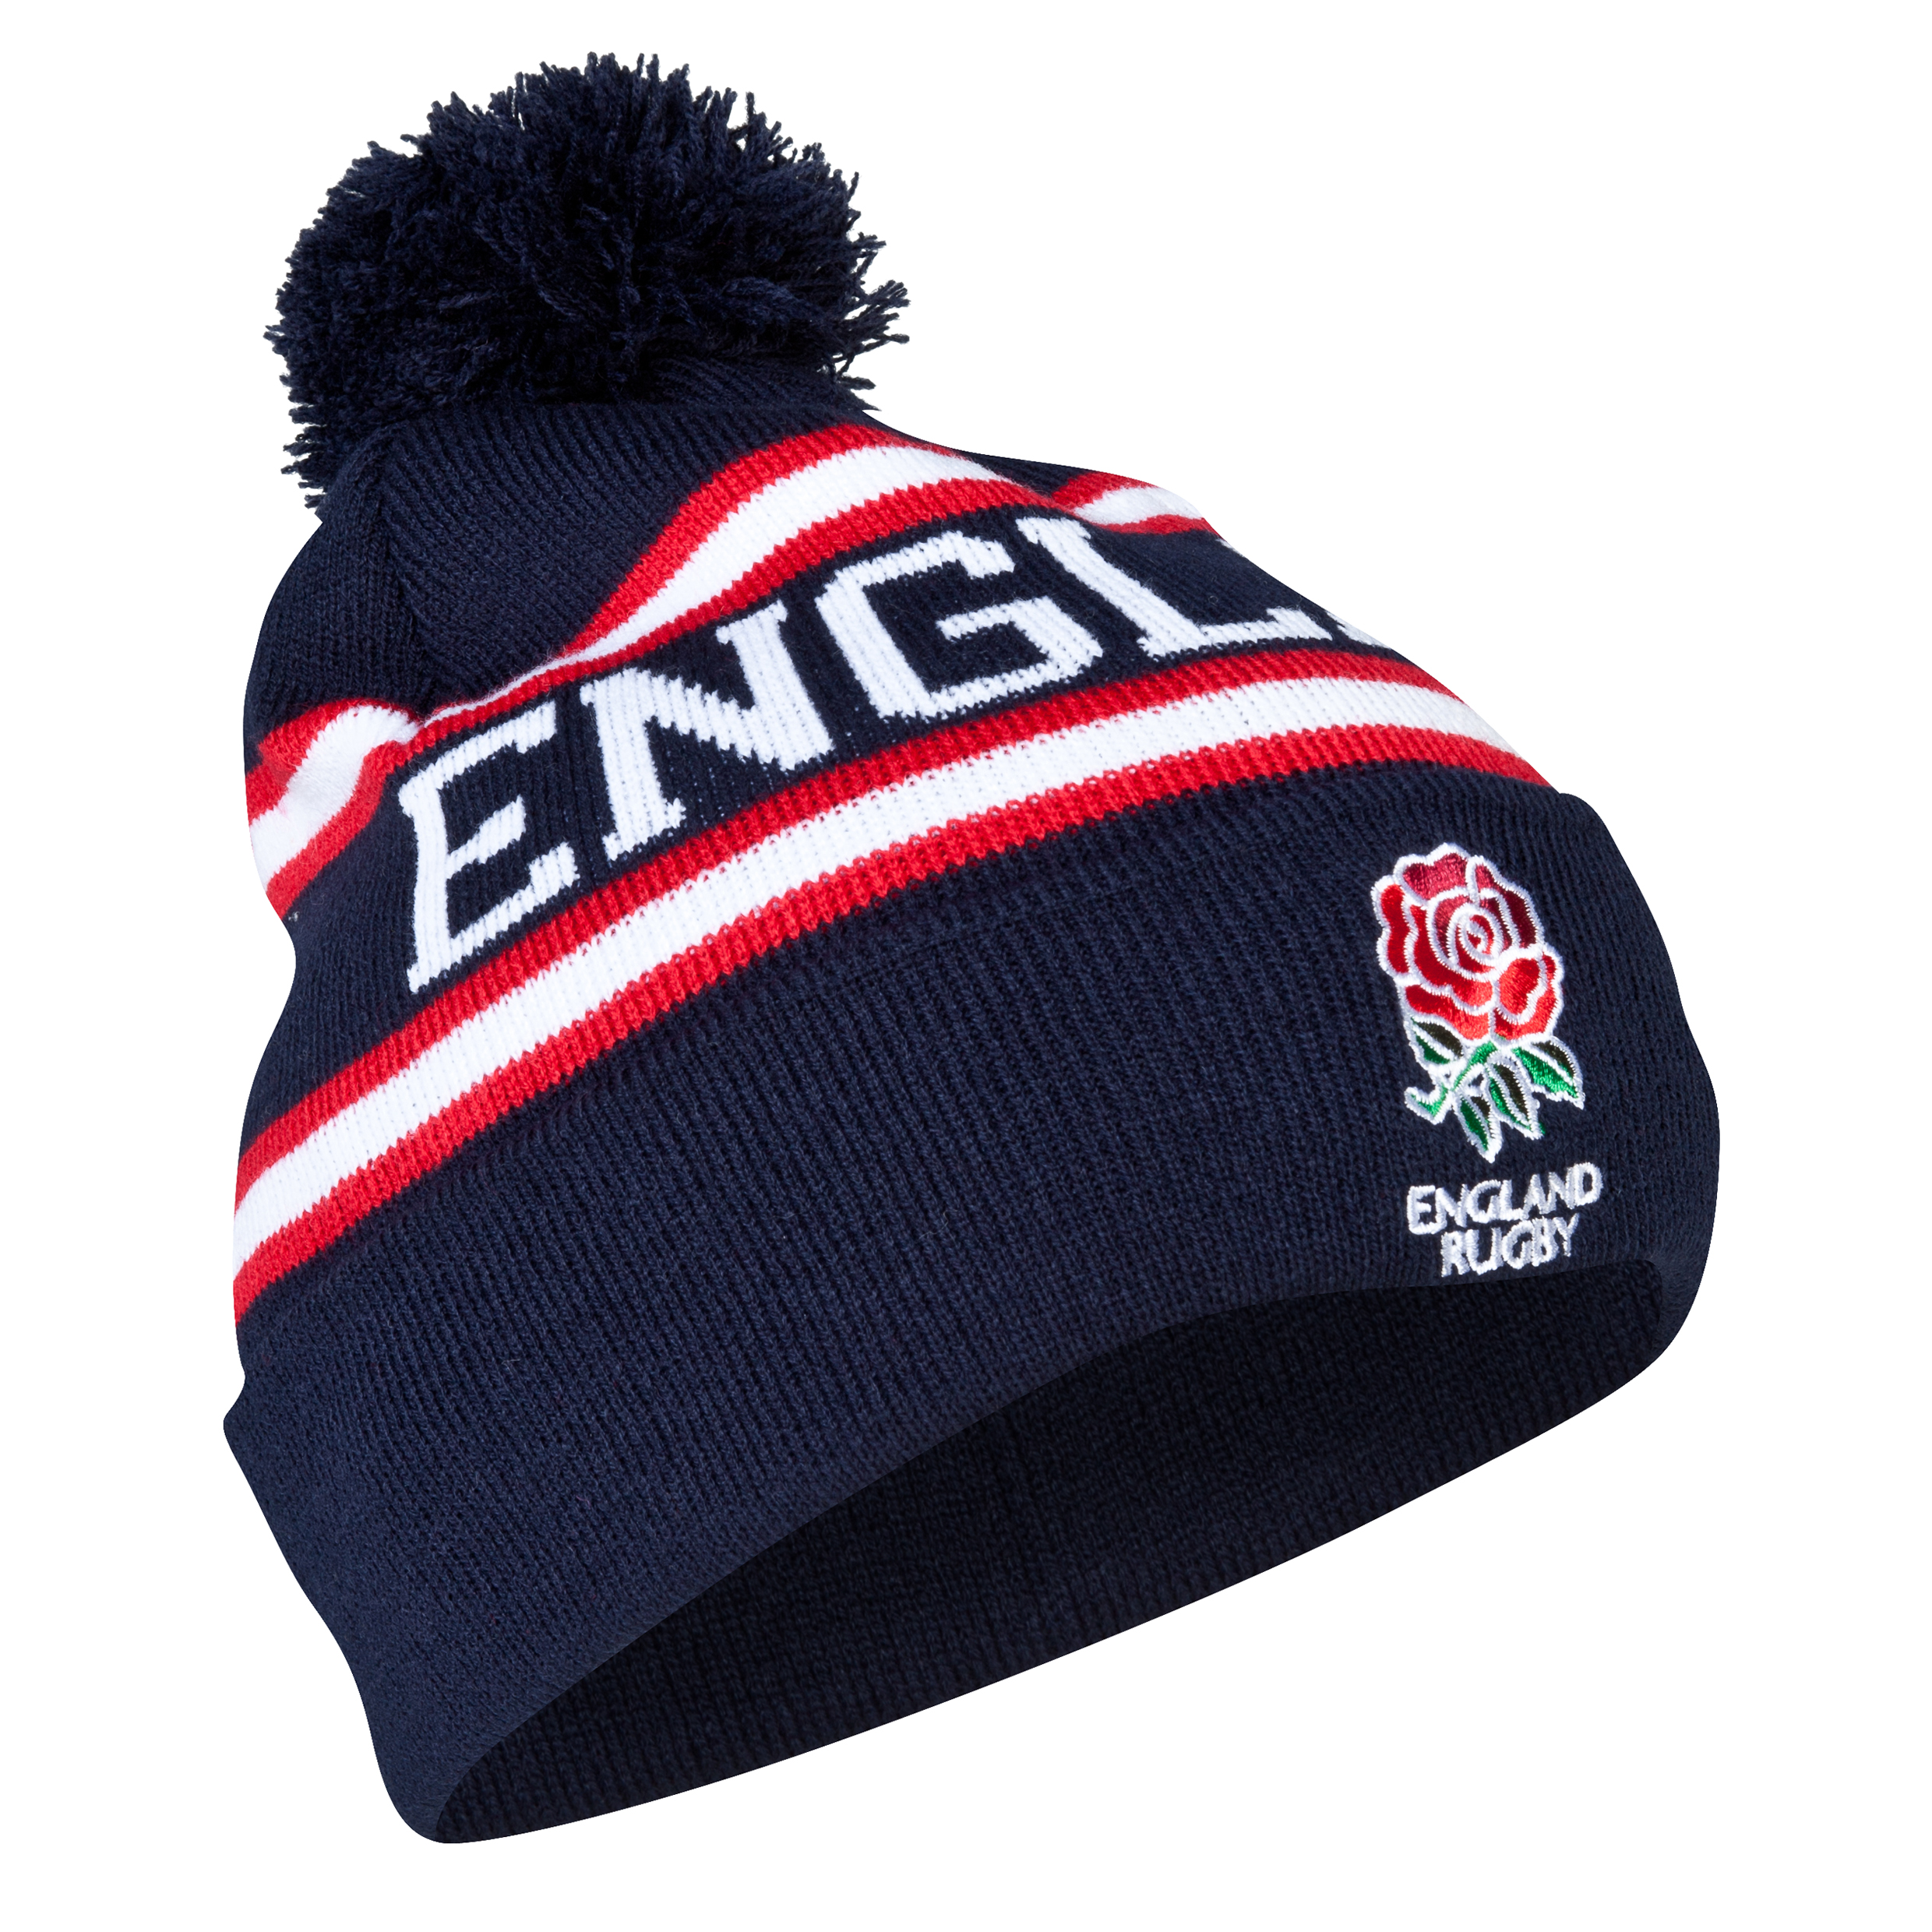 England Text Cuff Beanie - Mens - Navy